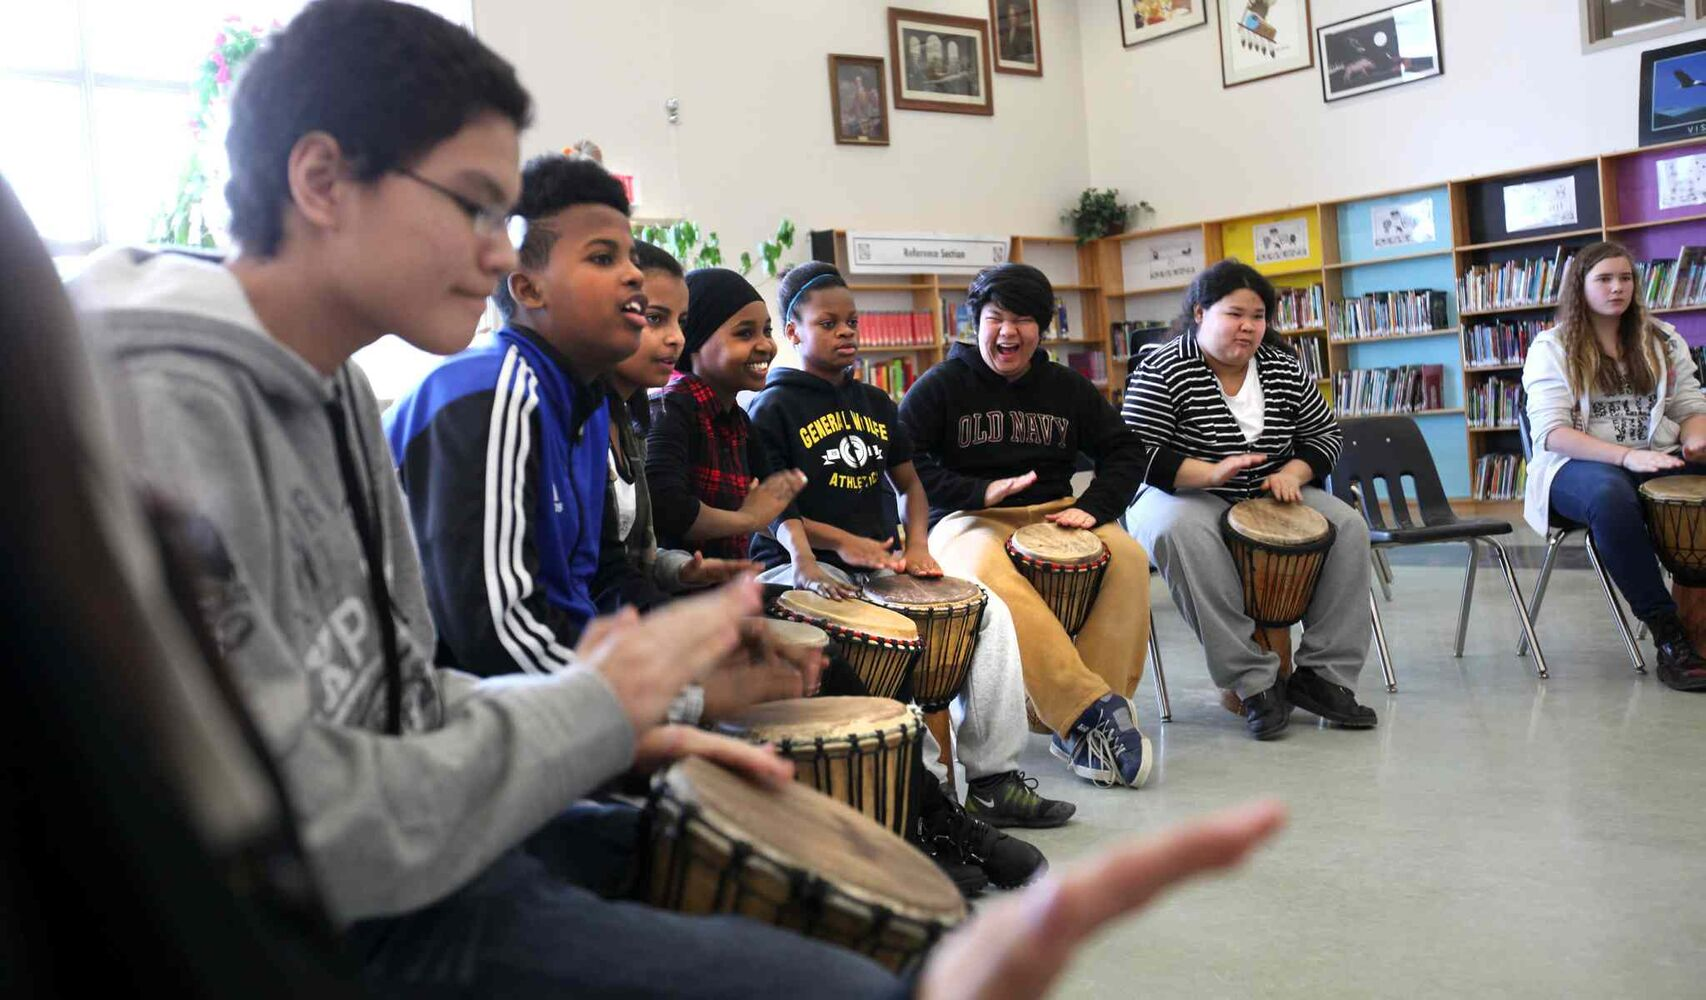 A broad spectrum of students, from refugees to indigenous Canadians, learn to drum together at General Wolfe School Tuesday morning.   (Ruth Bonneville / Winnipeg Free Press)